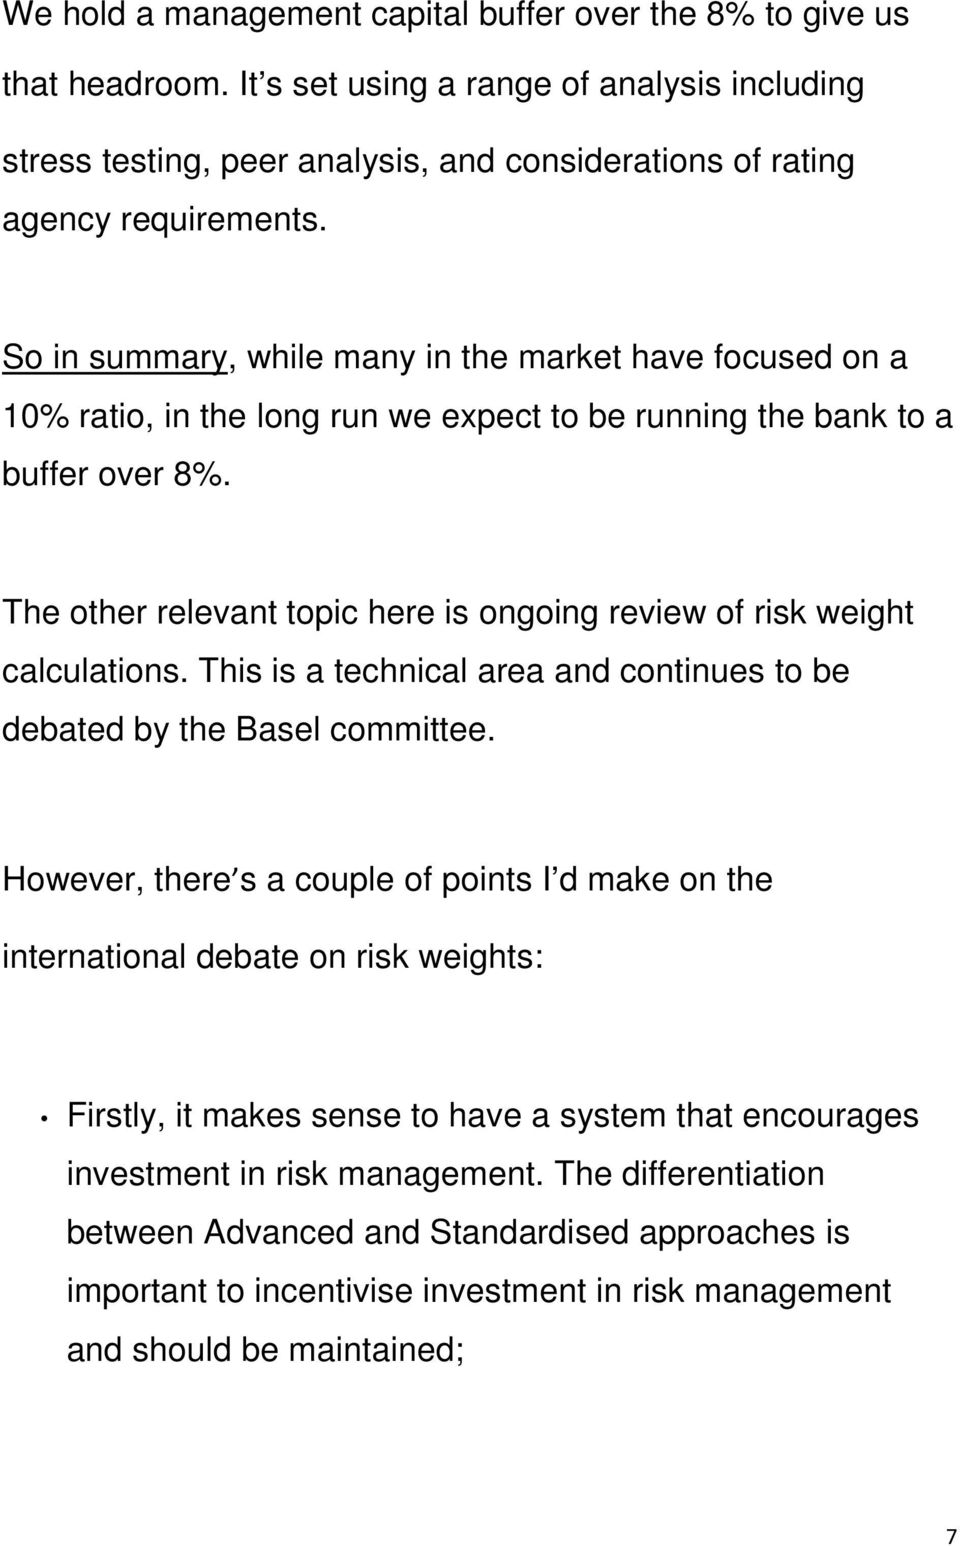 The other relevant topic here is ongoing review of risk weight calculations. This is a technical area and continues to be debated by the Basel committee.